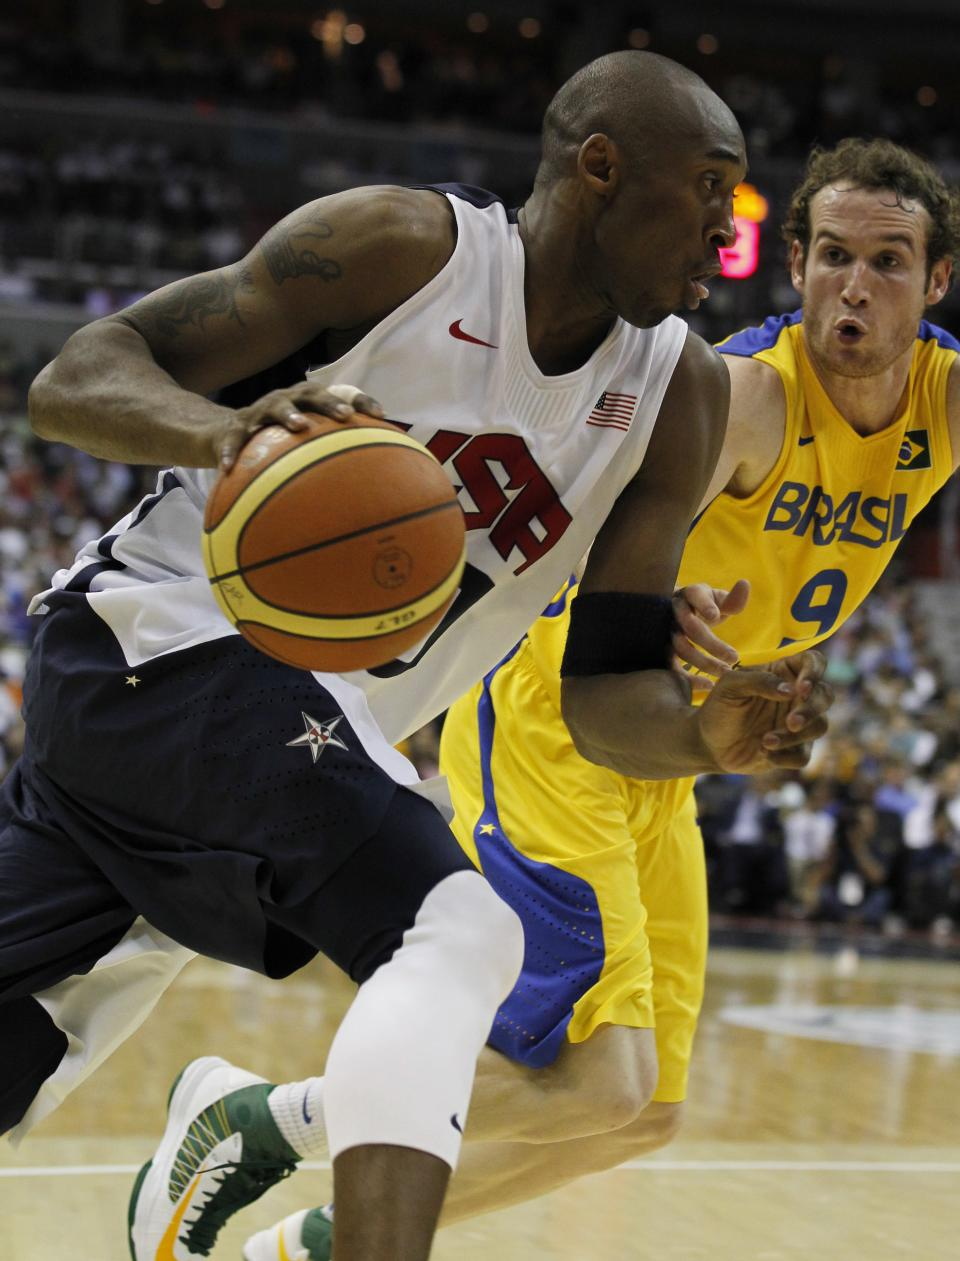 Team USA's Kobe Bryant,left, works to get past Brazil defender Marcelo Tieppo Huertas during the first half of an Olympic men's exhibition basketball game, Monday, July 16, 2012, in Washington. (AP Photo/Alex Brandon)